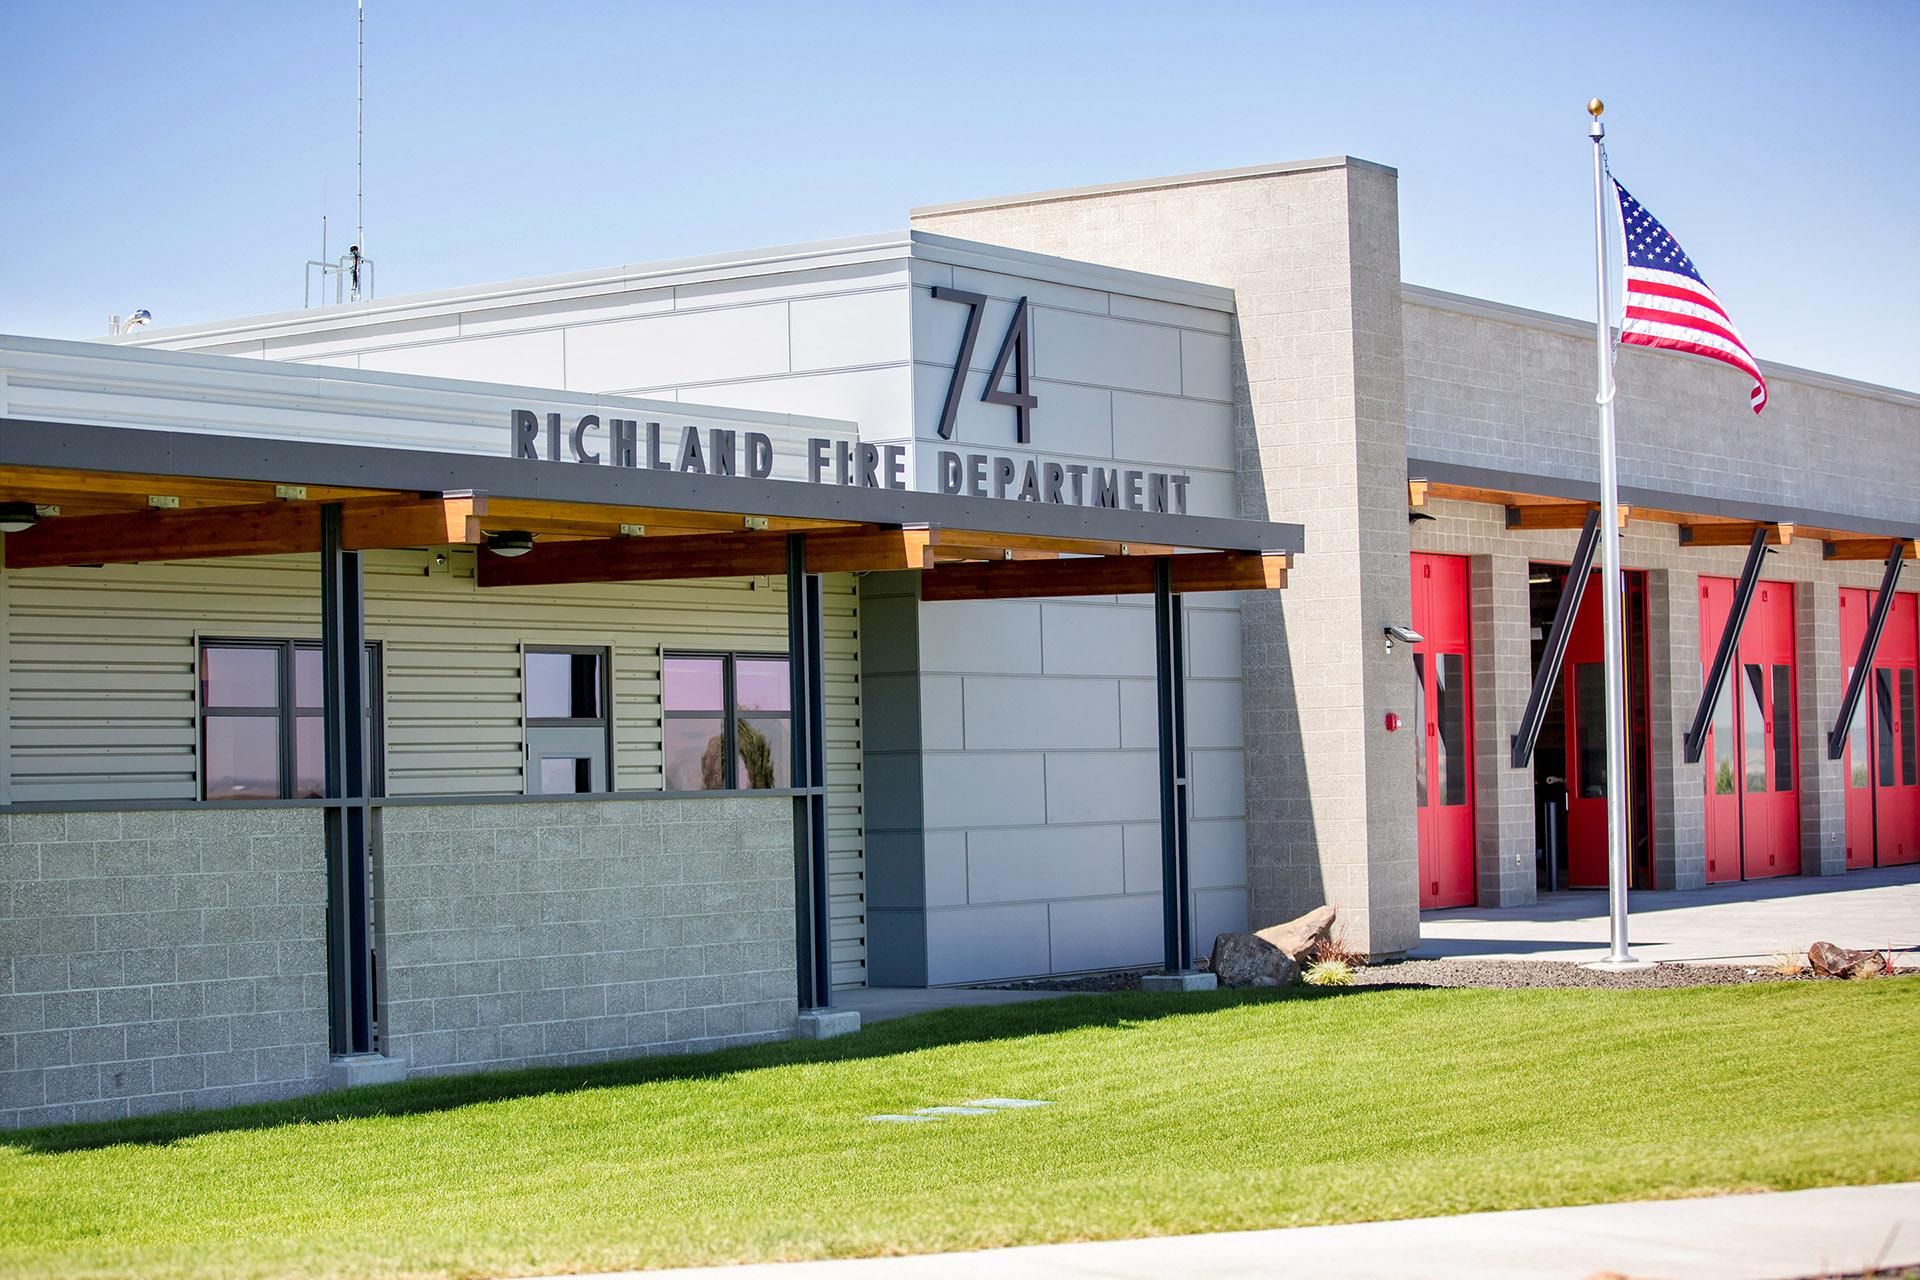 Richland Fire Department No 74 Exterior